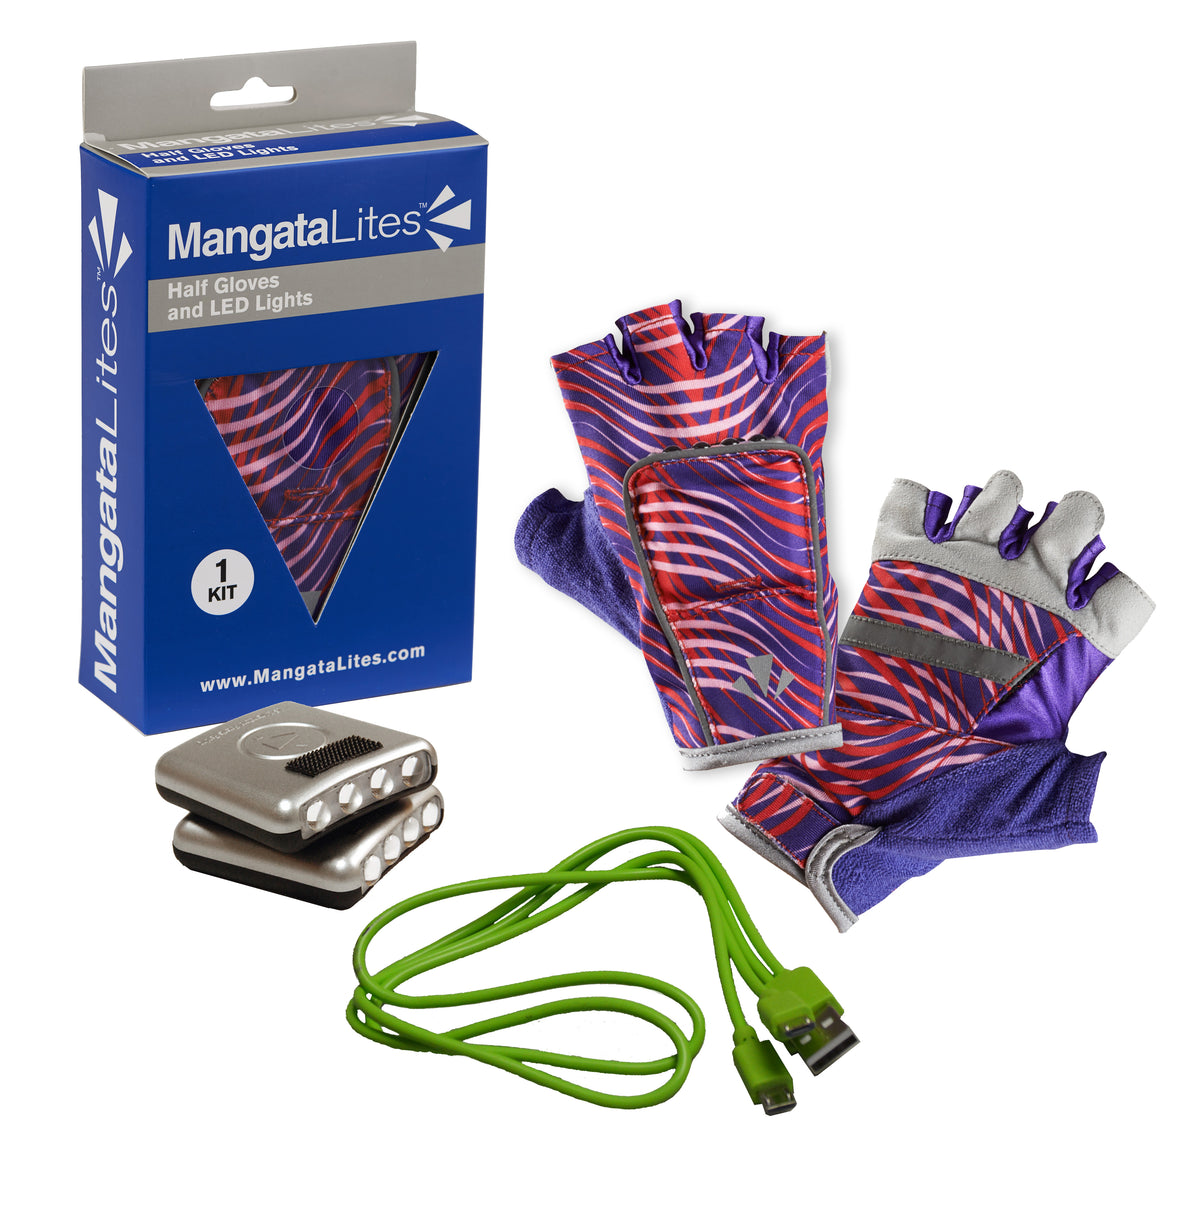 MangataLites Red & Purple Wave Half Gloves Kit (Lights included) - Mangata